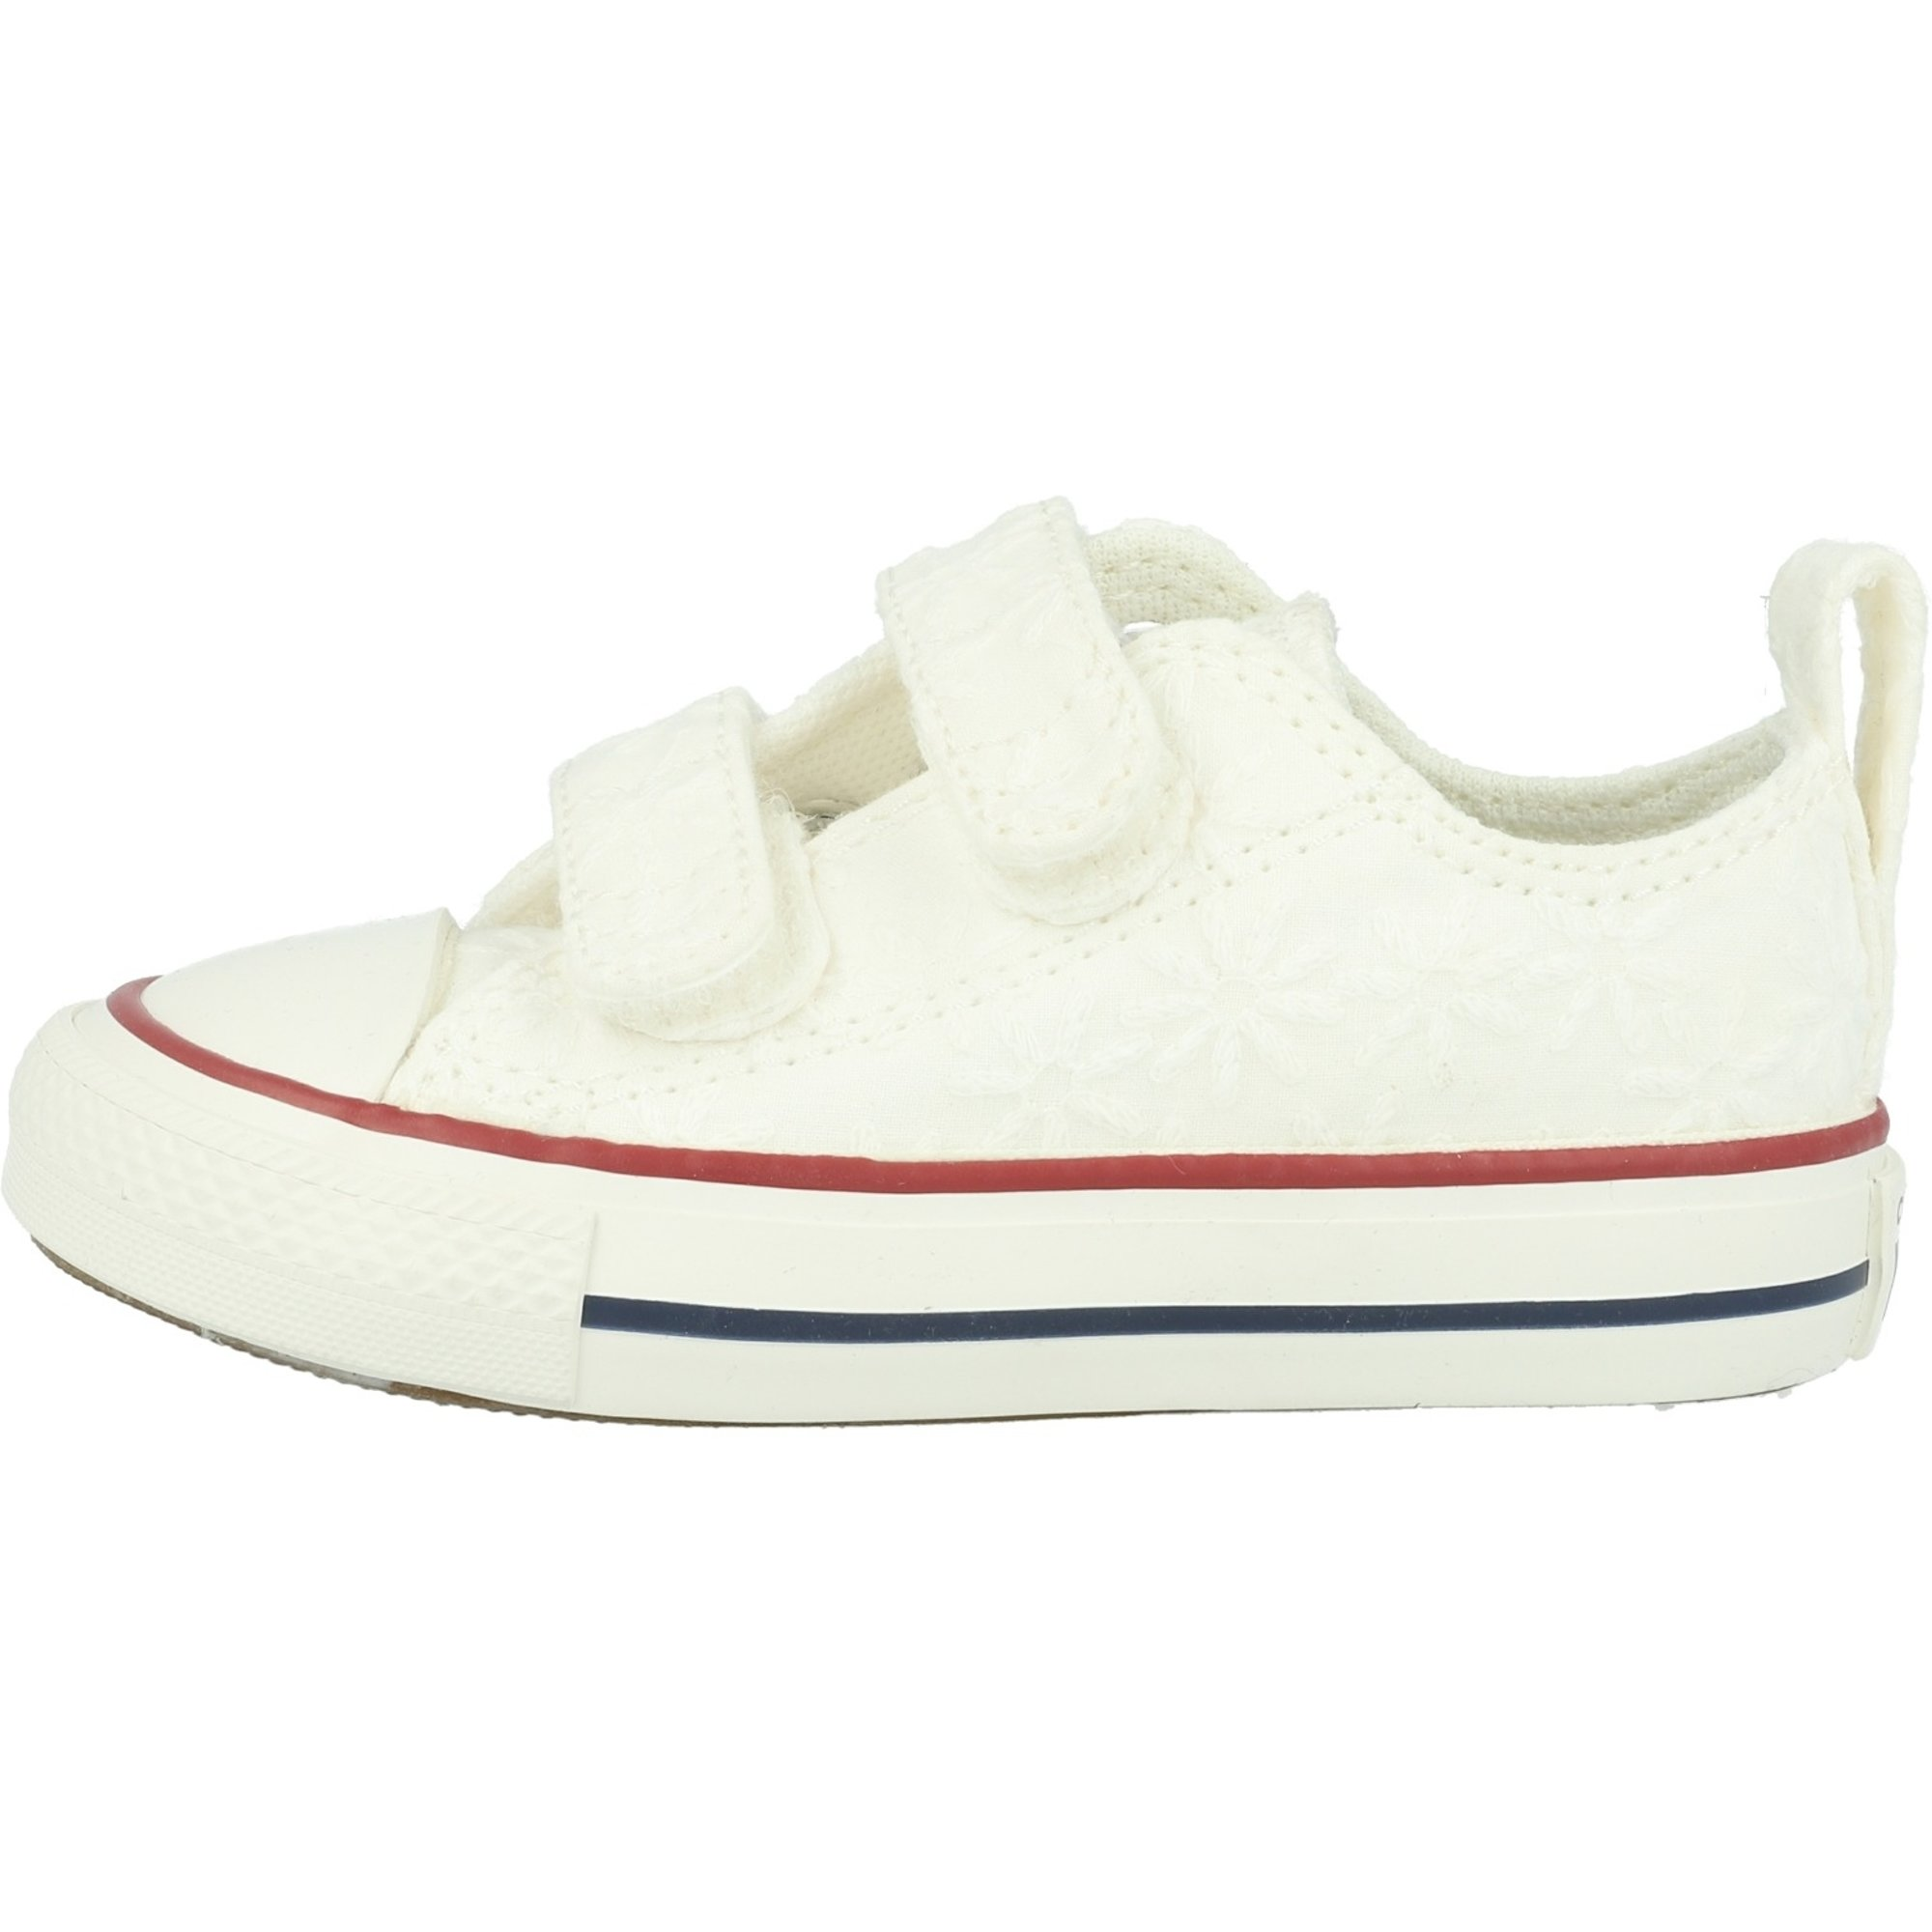 Converse Chuck Taylor All Star 2V Little Miss Chuck Ox White/Midnight Navy Cotton Infant